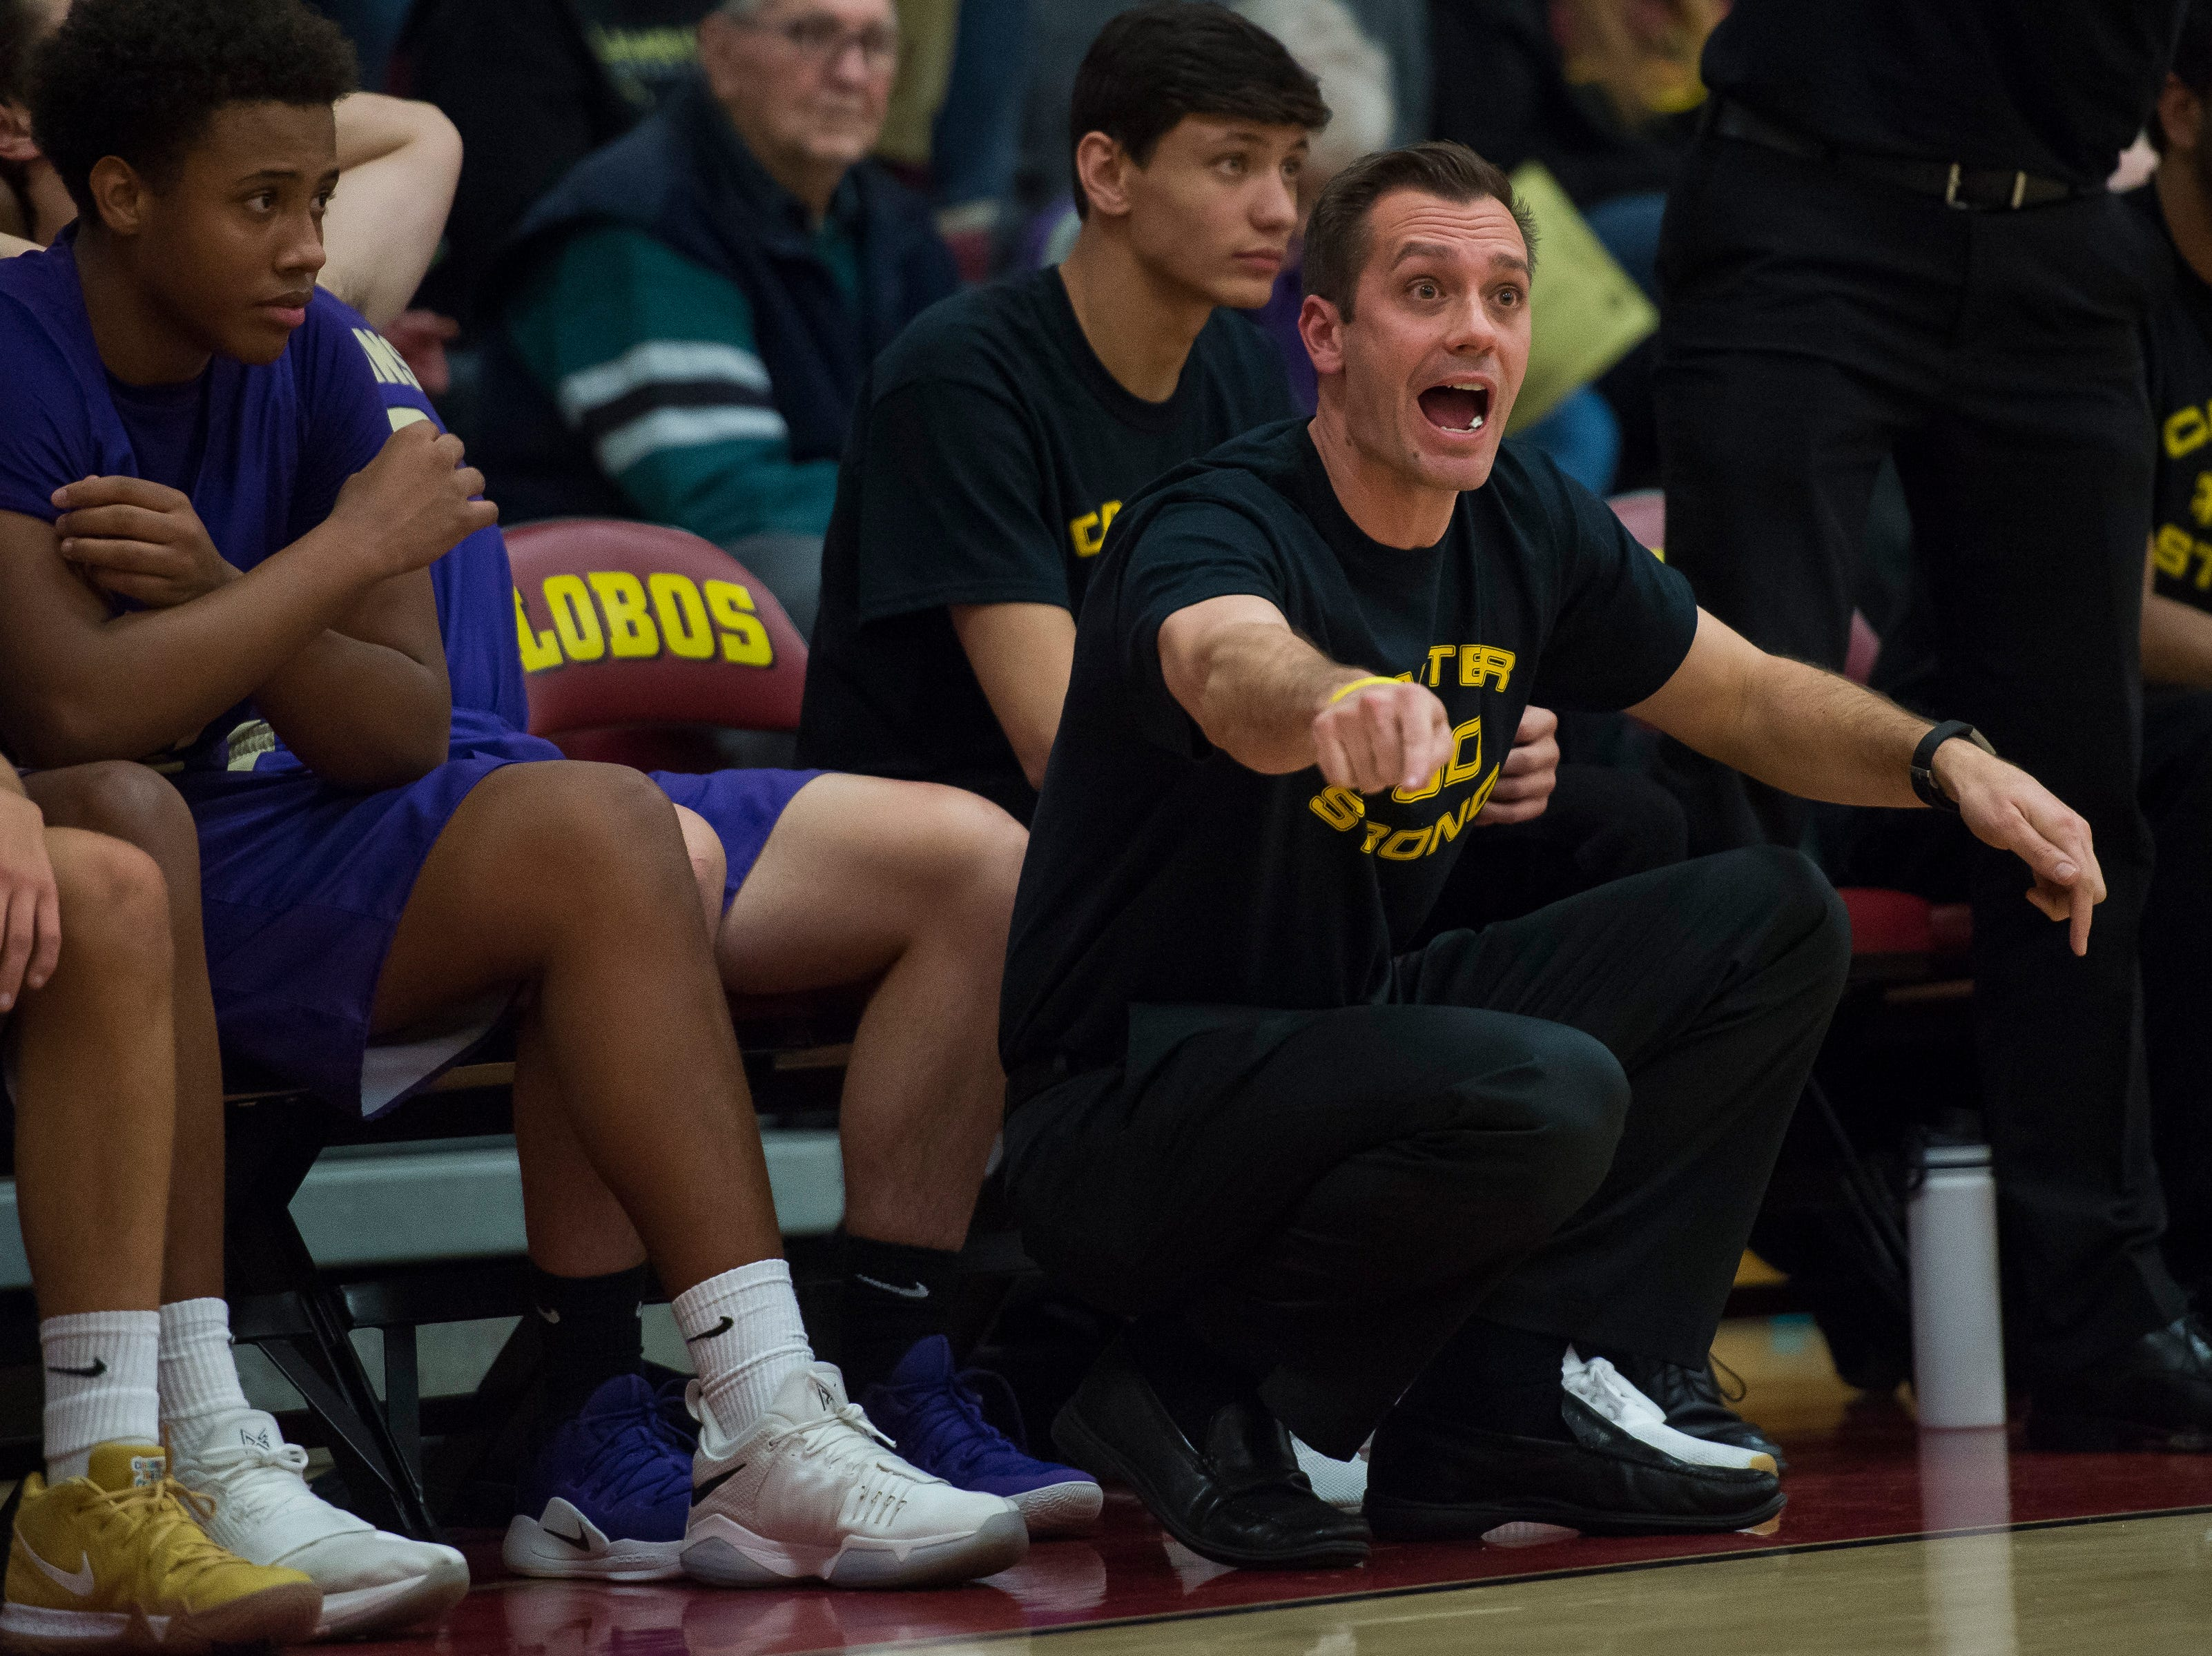 Fort Collins High School head basketball coach Jeff Schmidt talks to his players during a game against Rocky Mountain High School on Friday, Jan. 18, 2019, at Rocky Mountain High School in Fort Collins, Colo.